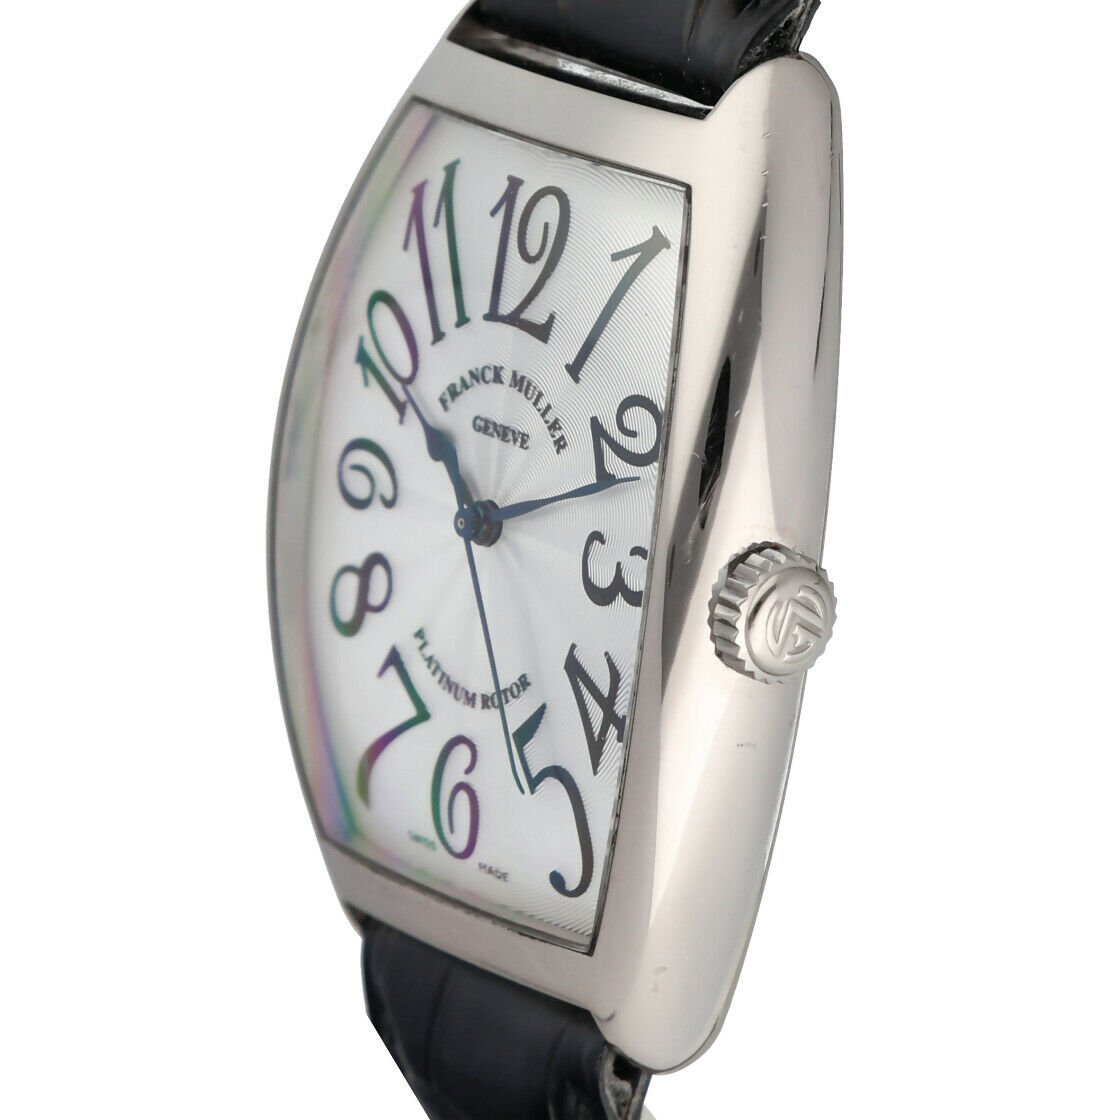 Franck Muller 6850 SC Cintree Curvex 18k White Gold Leather Automatic Mens Watch 124317748372 3